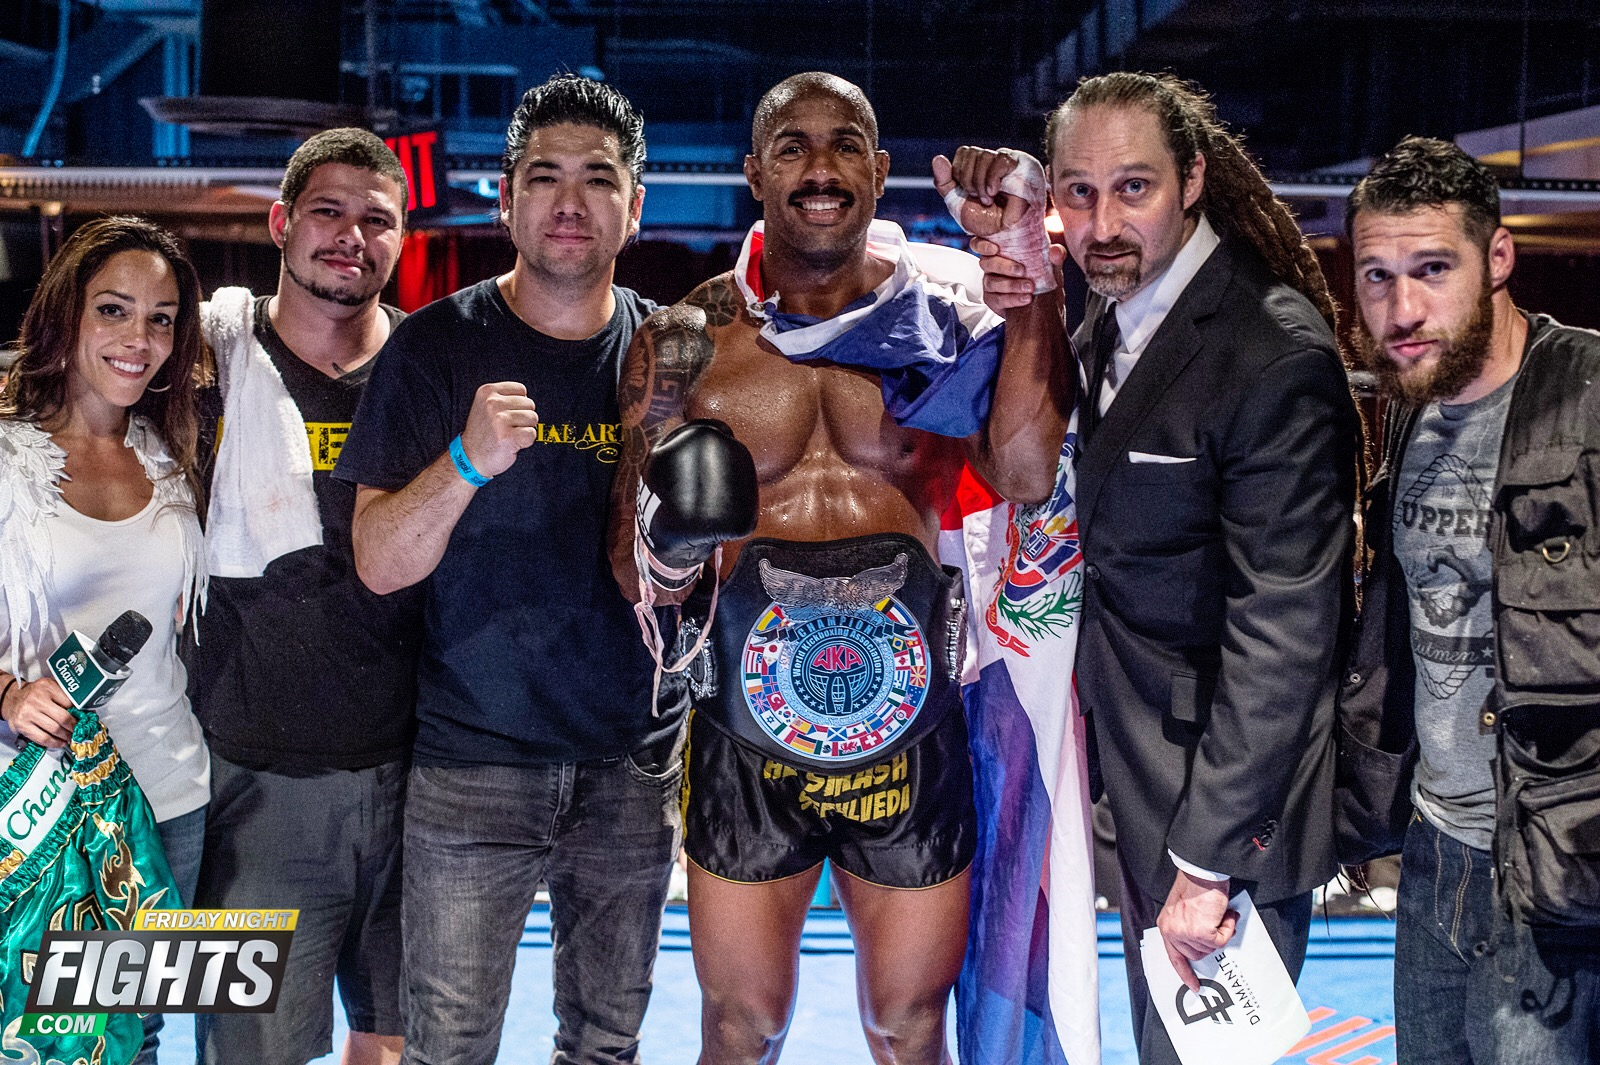 Andersons Martial Arts NYC's Ariel Sepleuda Wins the North American Muay Thai Pro-Title Belt!